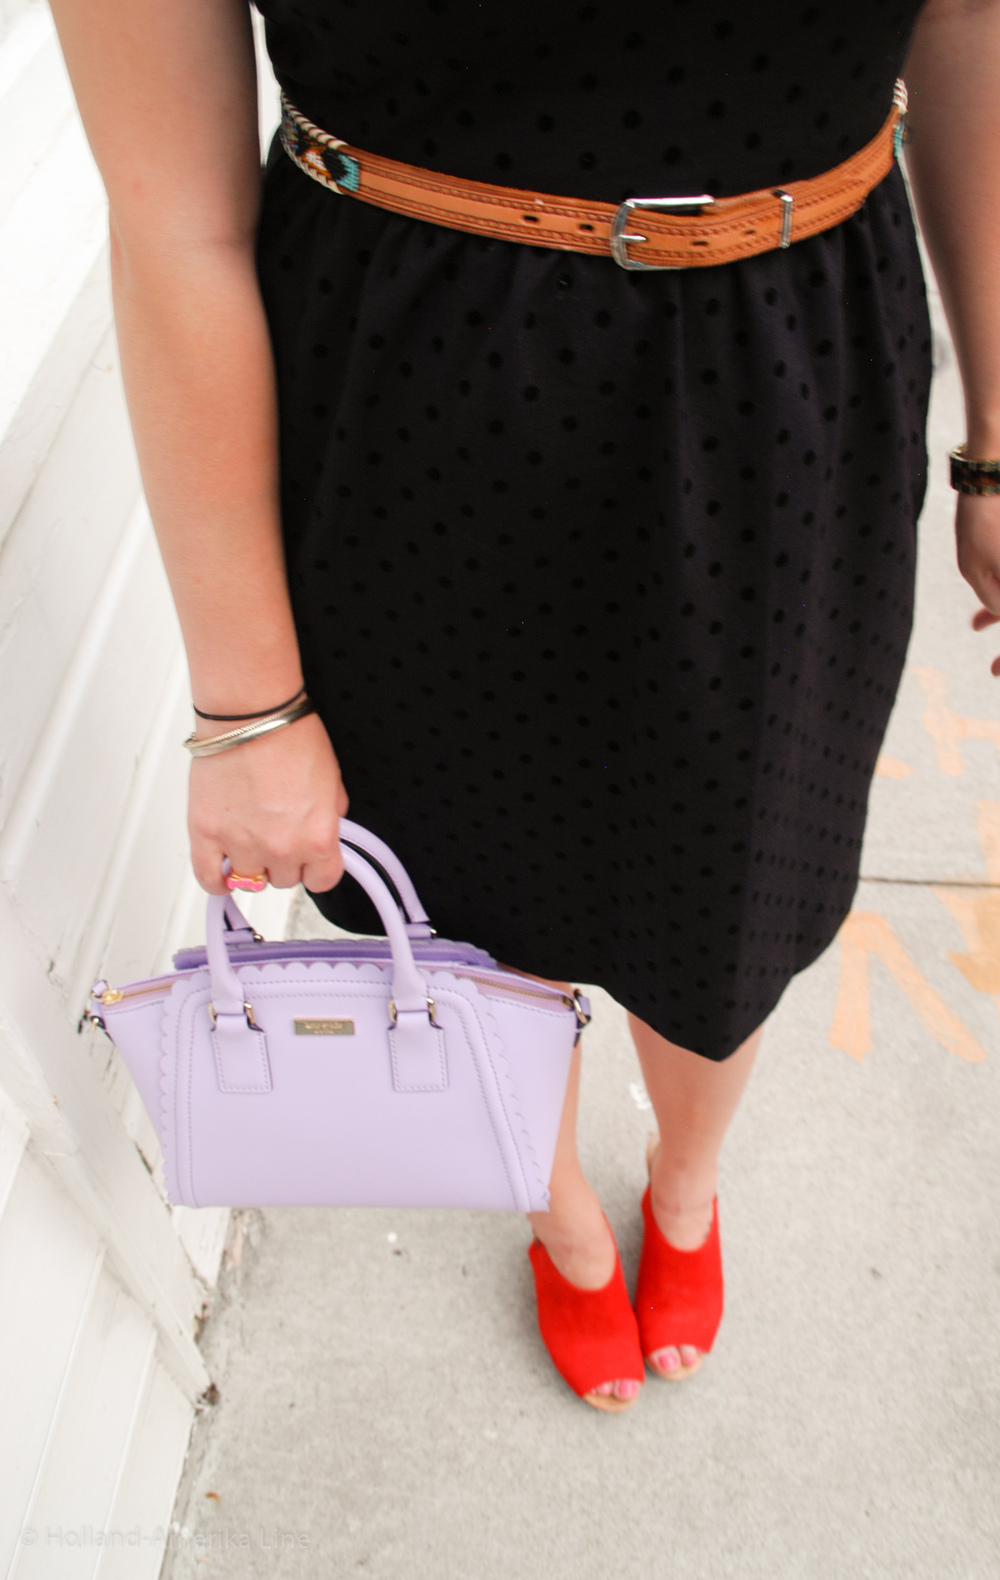 Dress: J.Crew | Belt: Vintage | Shoes: Payless | Bag: Kate Spade (marguerite) | Glasses: Ray Ban via Sunglass Hut